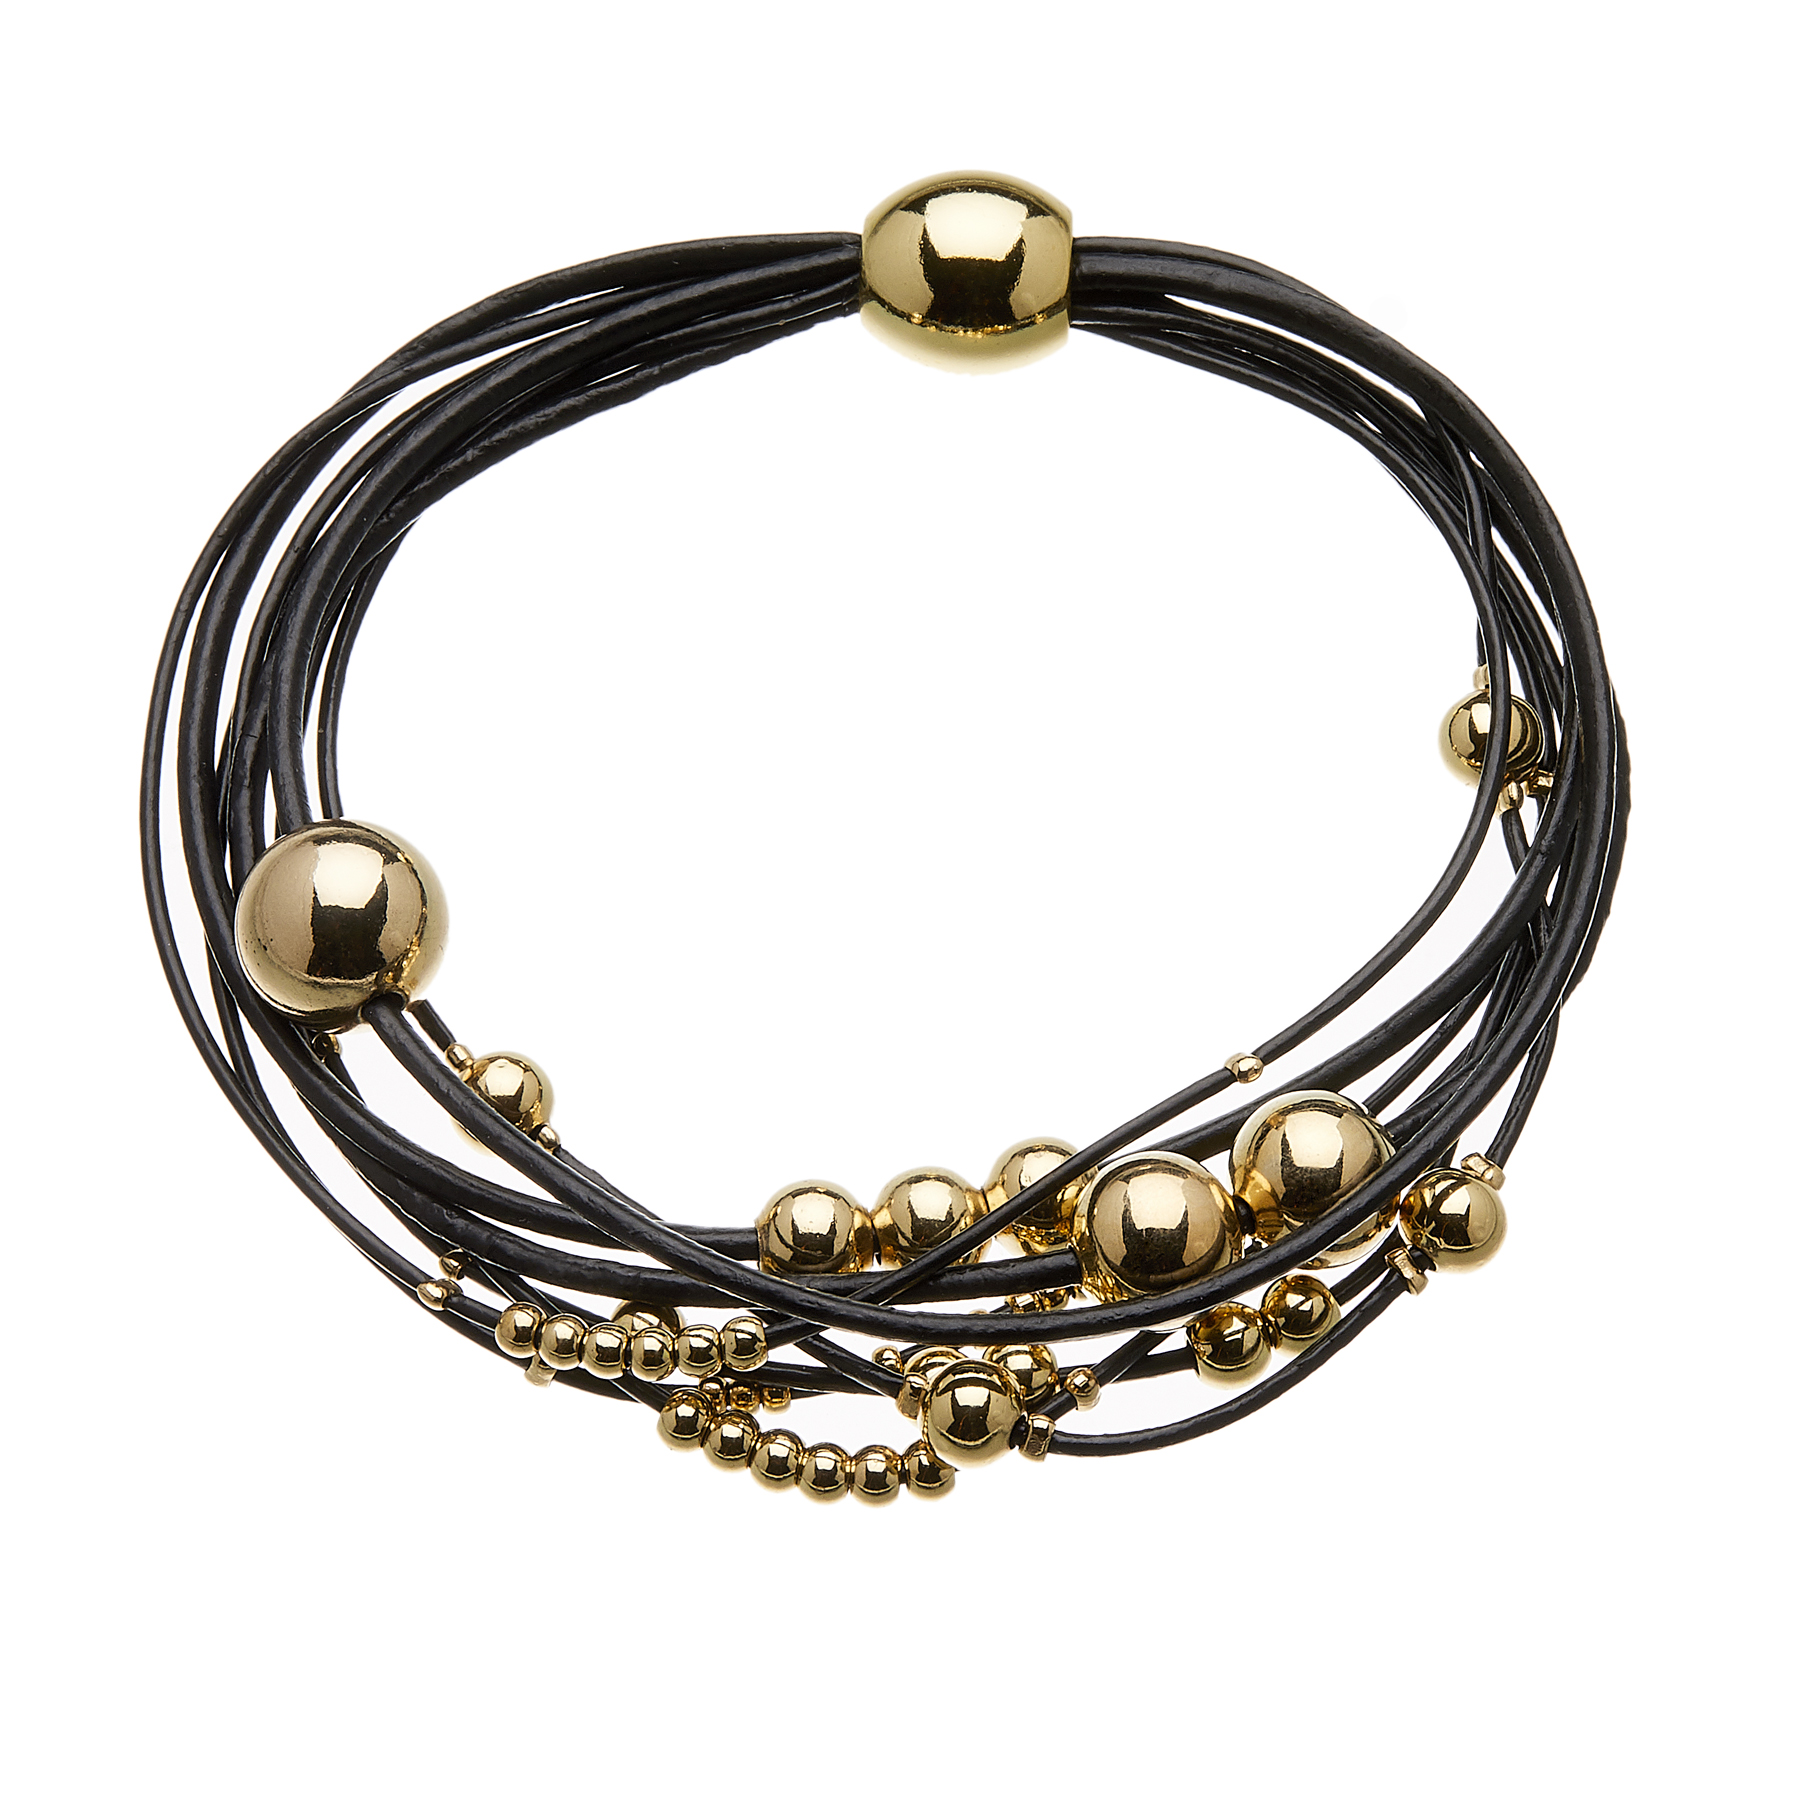 Bracelet with black leather strands and sliding gold beads - Ruth B